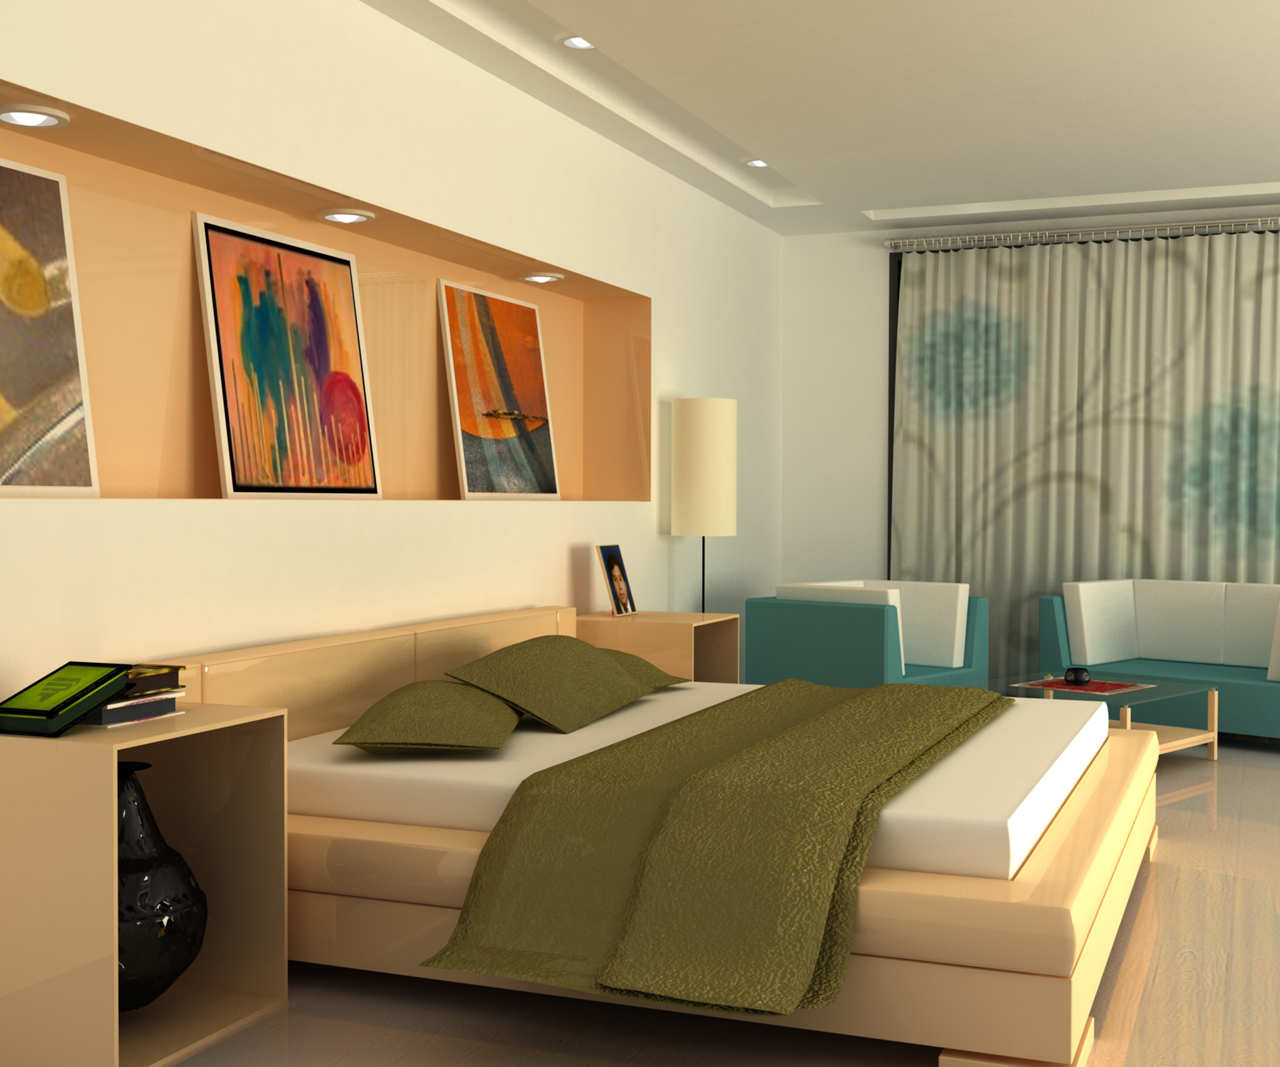 Bedroom Interior Design: Try To Design Your 3d Bedroom Online